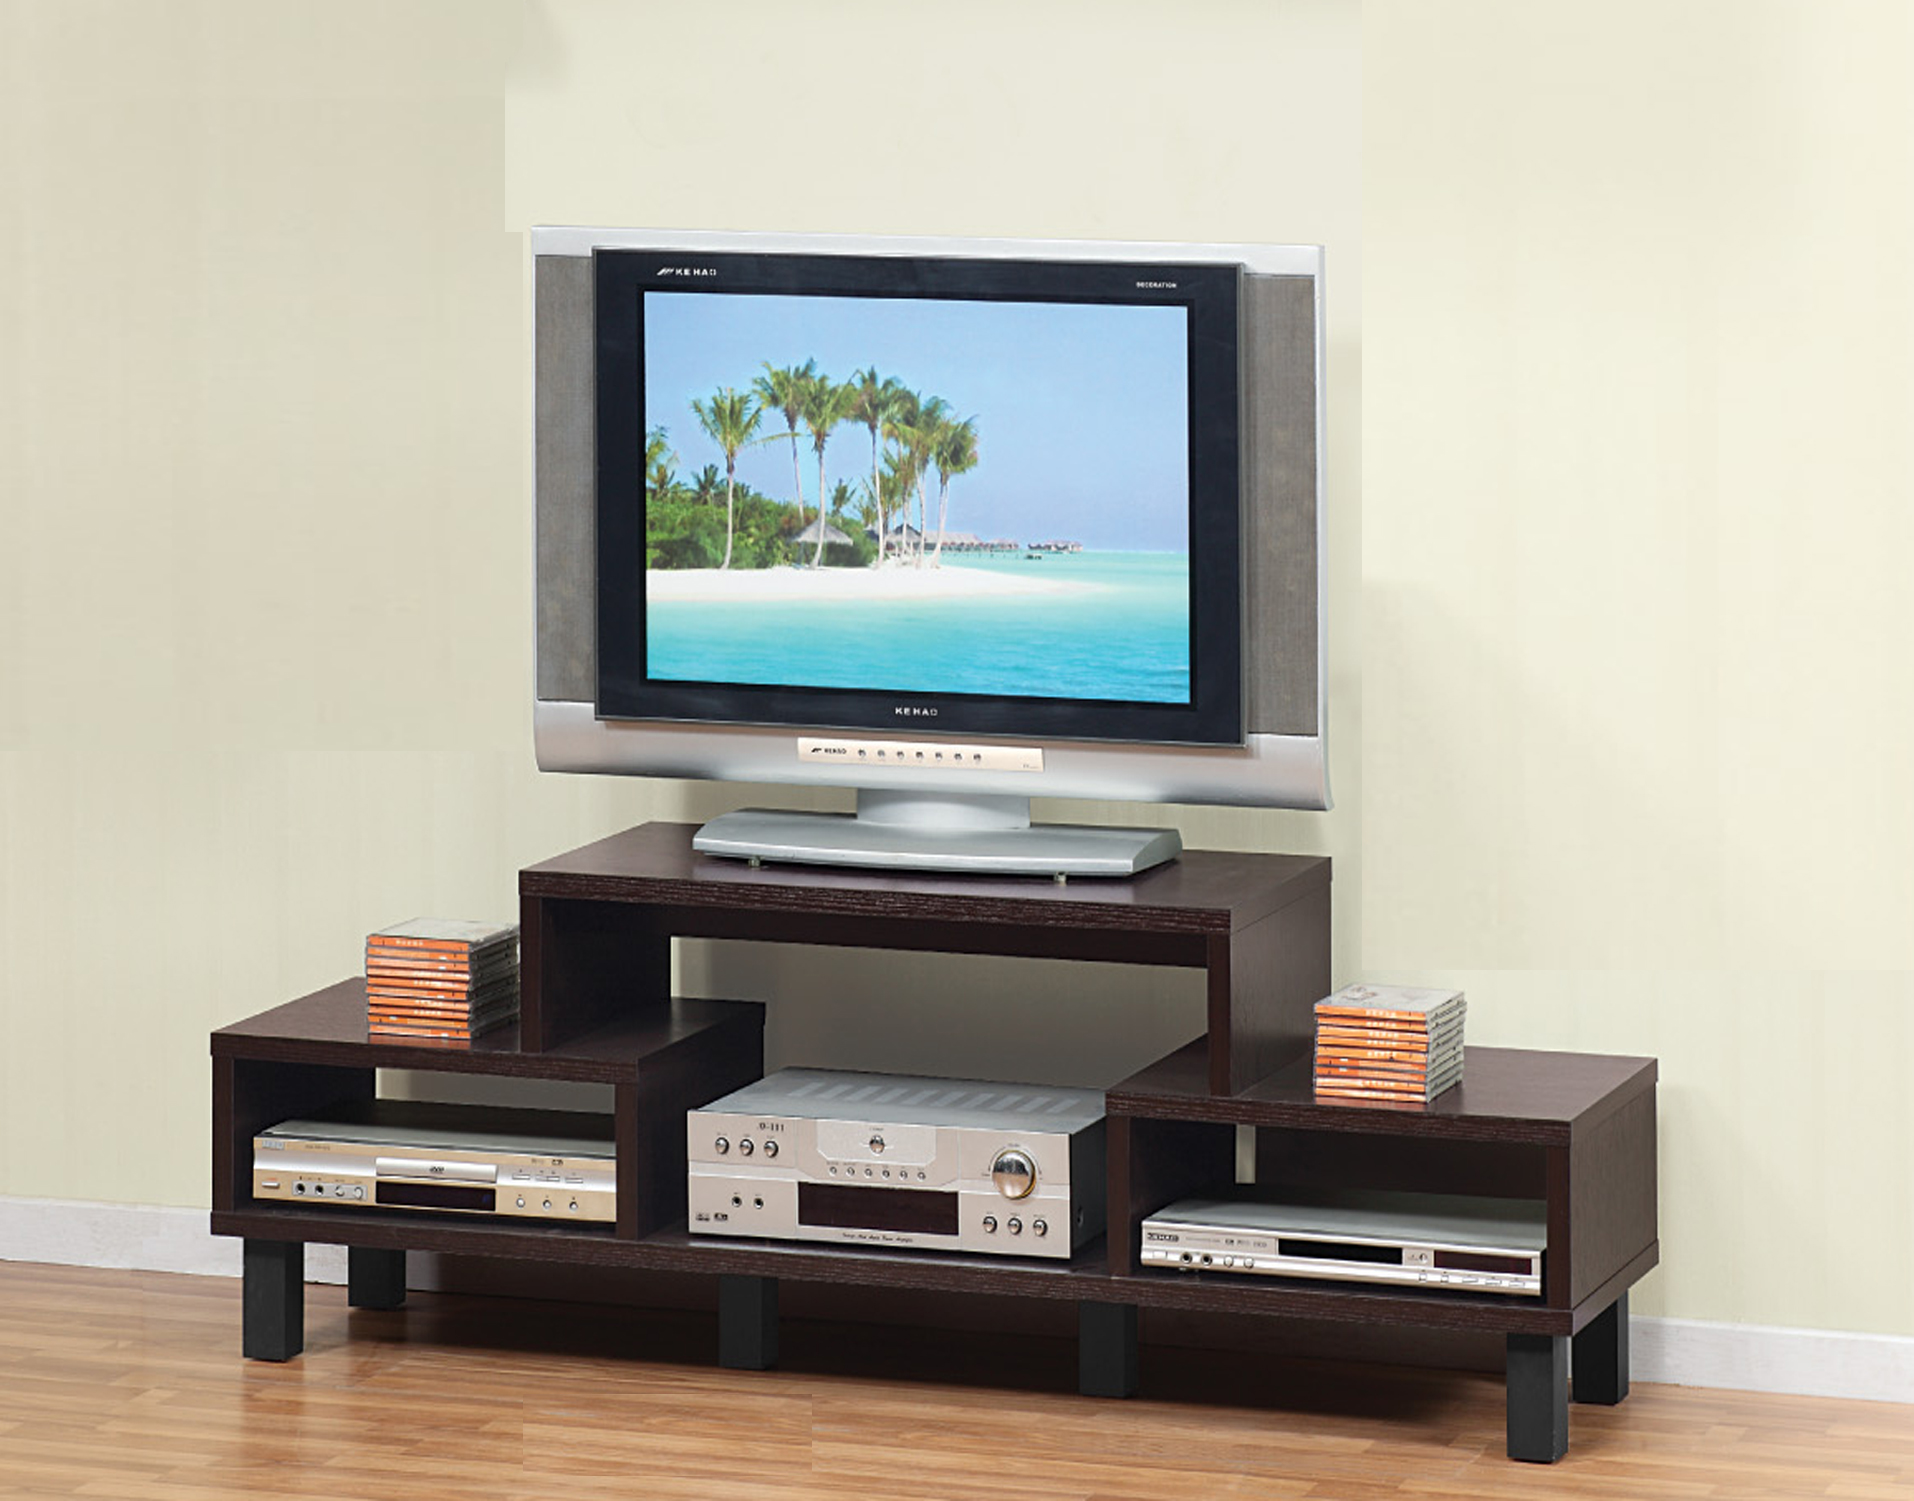 Id Usa Tv Stand 10368 Furniture Mattress Los Angeles And El Monte # Image Table Tv En Melamine